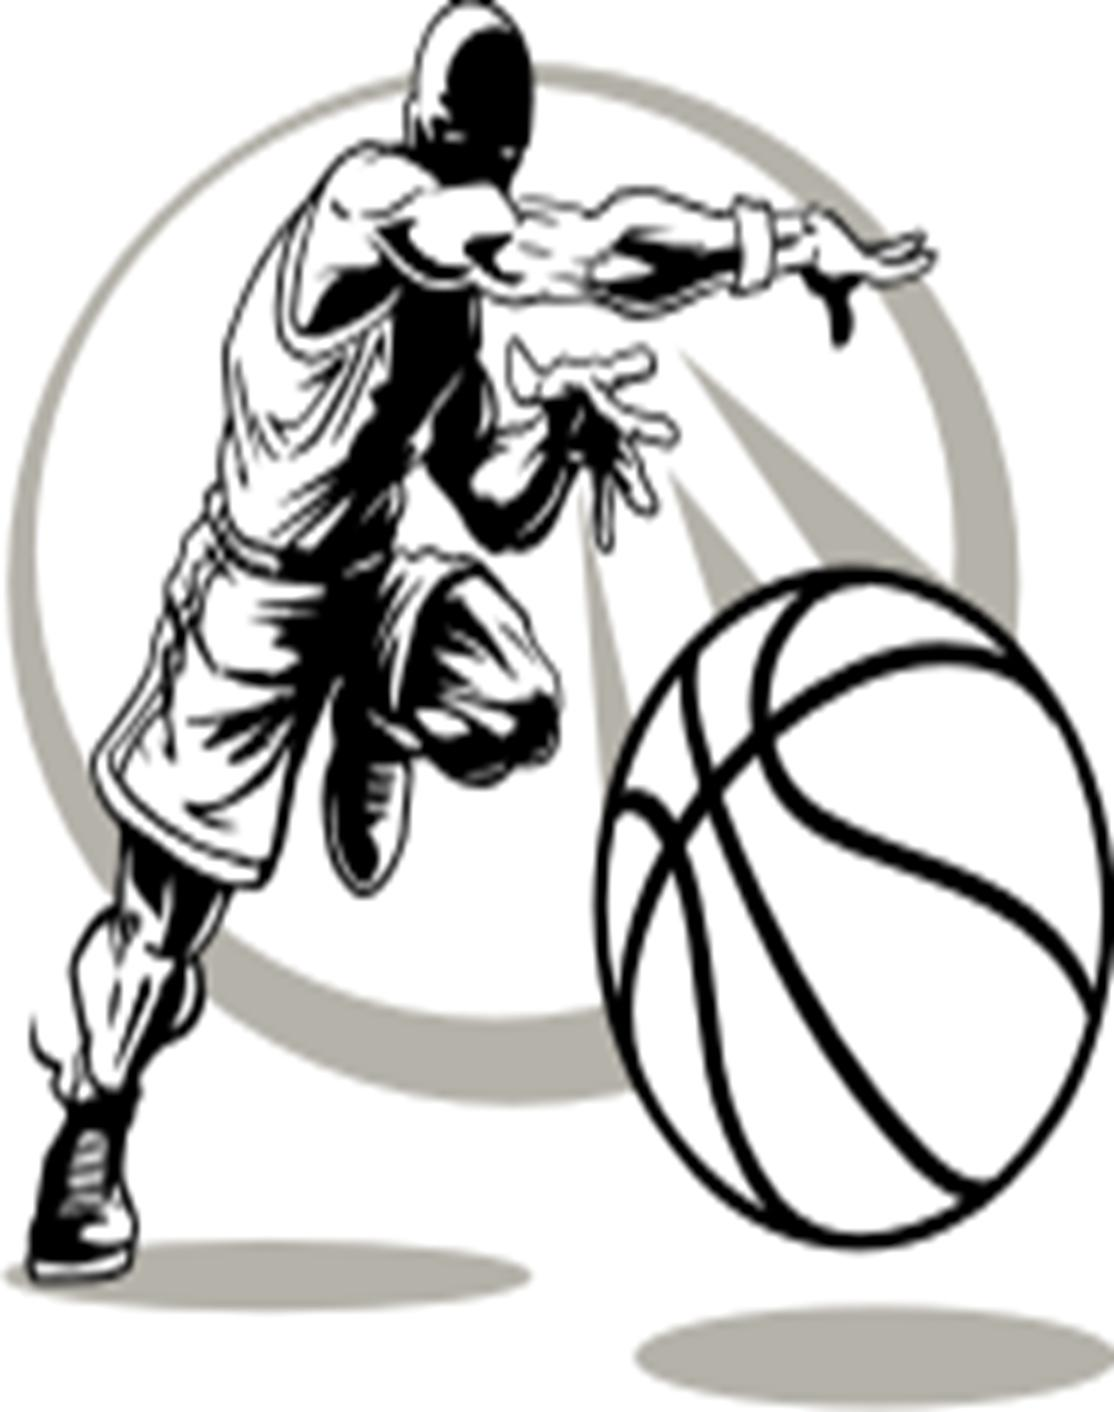 Boys Basketball Clipart Black And White Number 1 20 Free